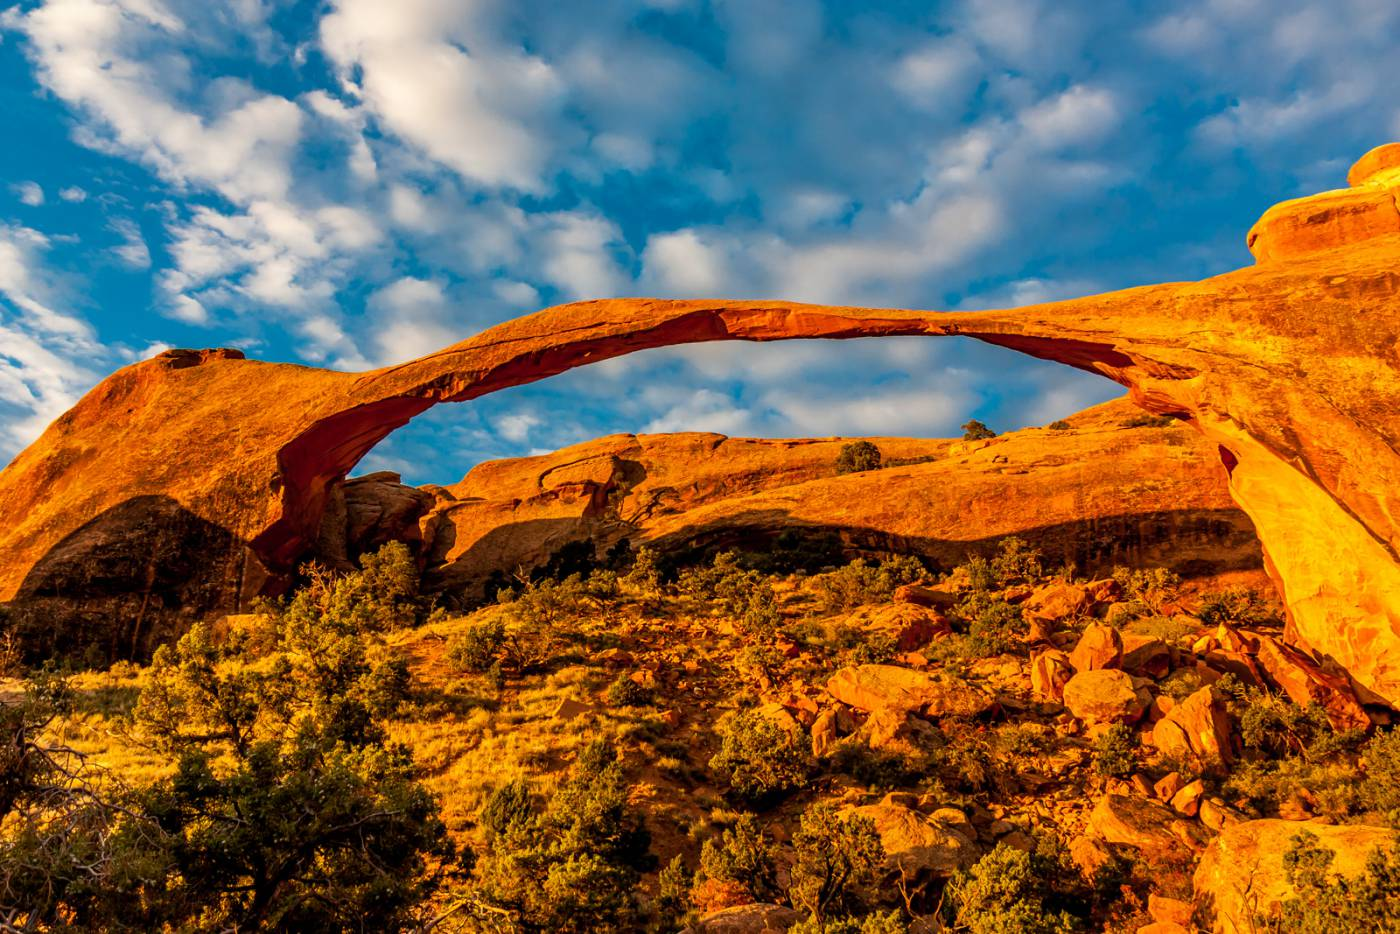 Landscape Arch glows in the morning.